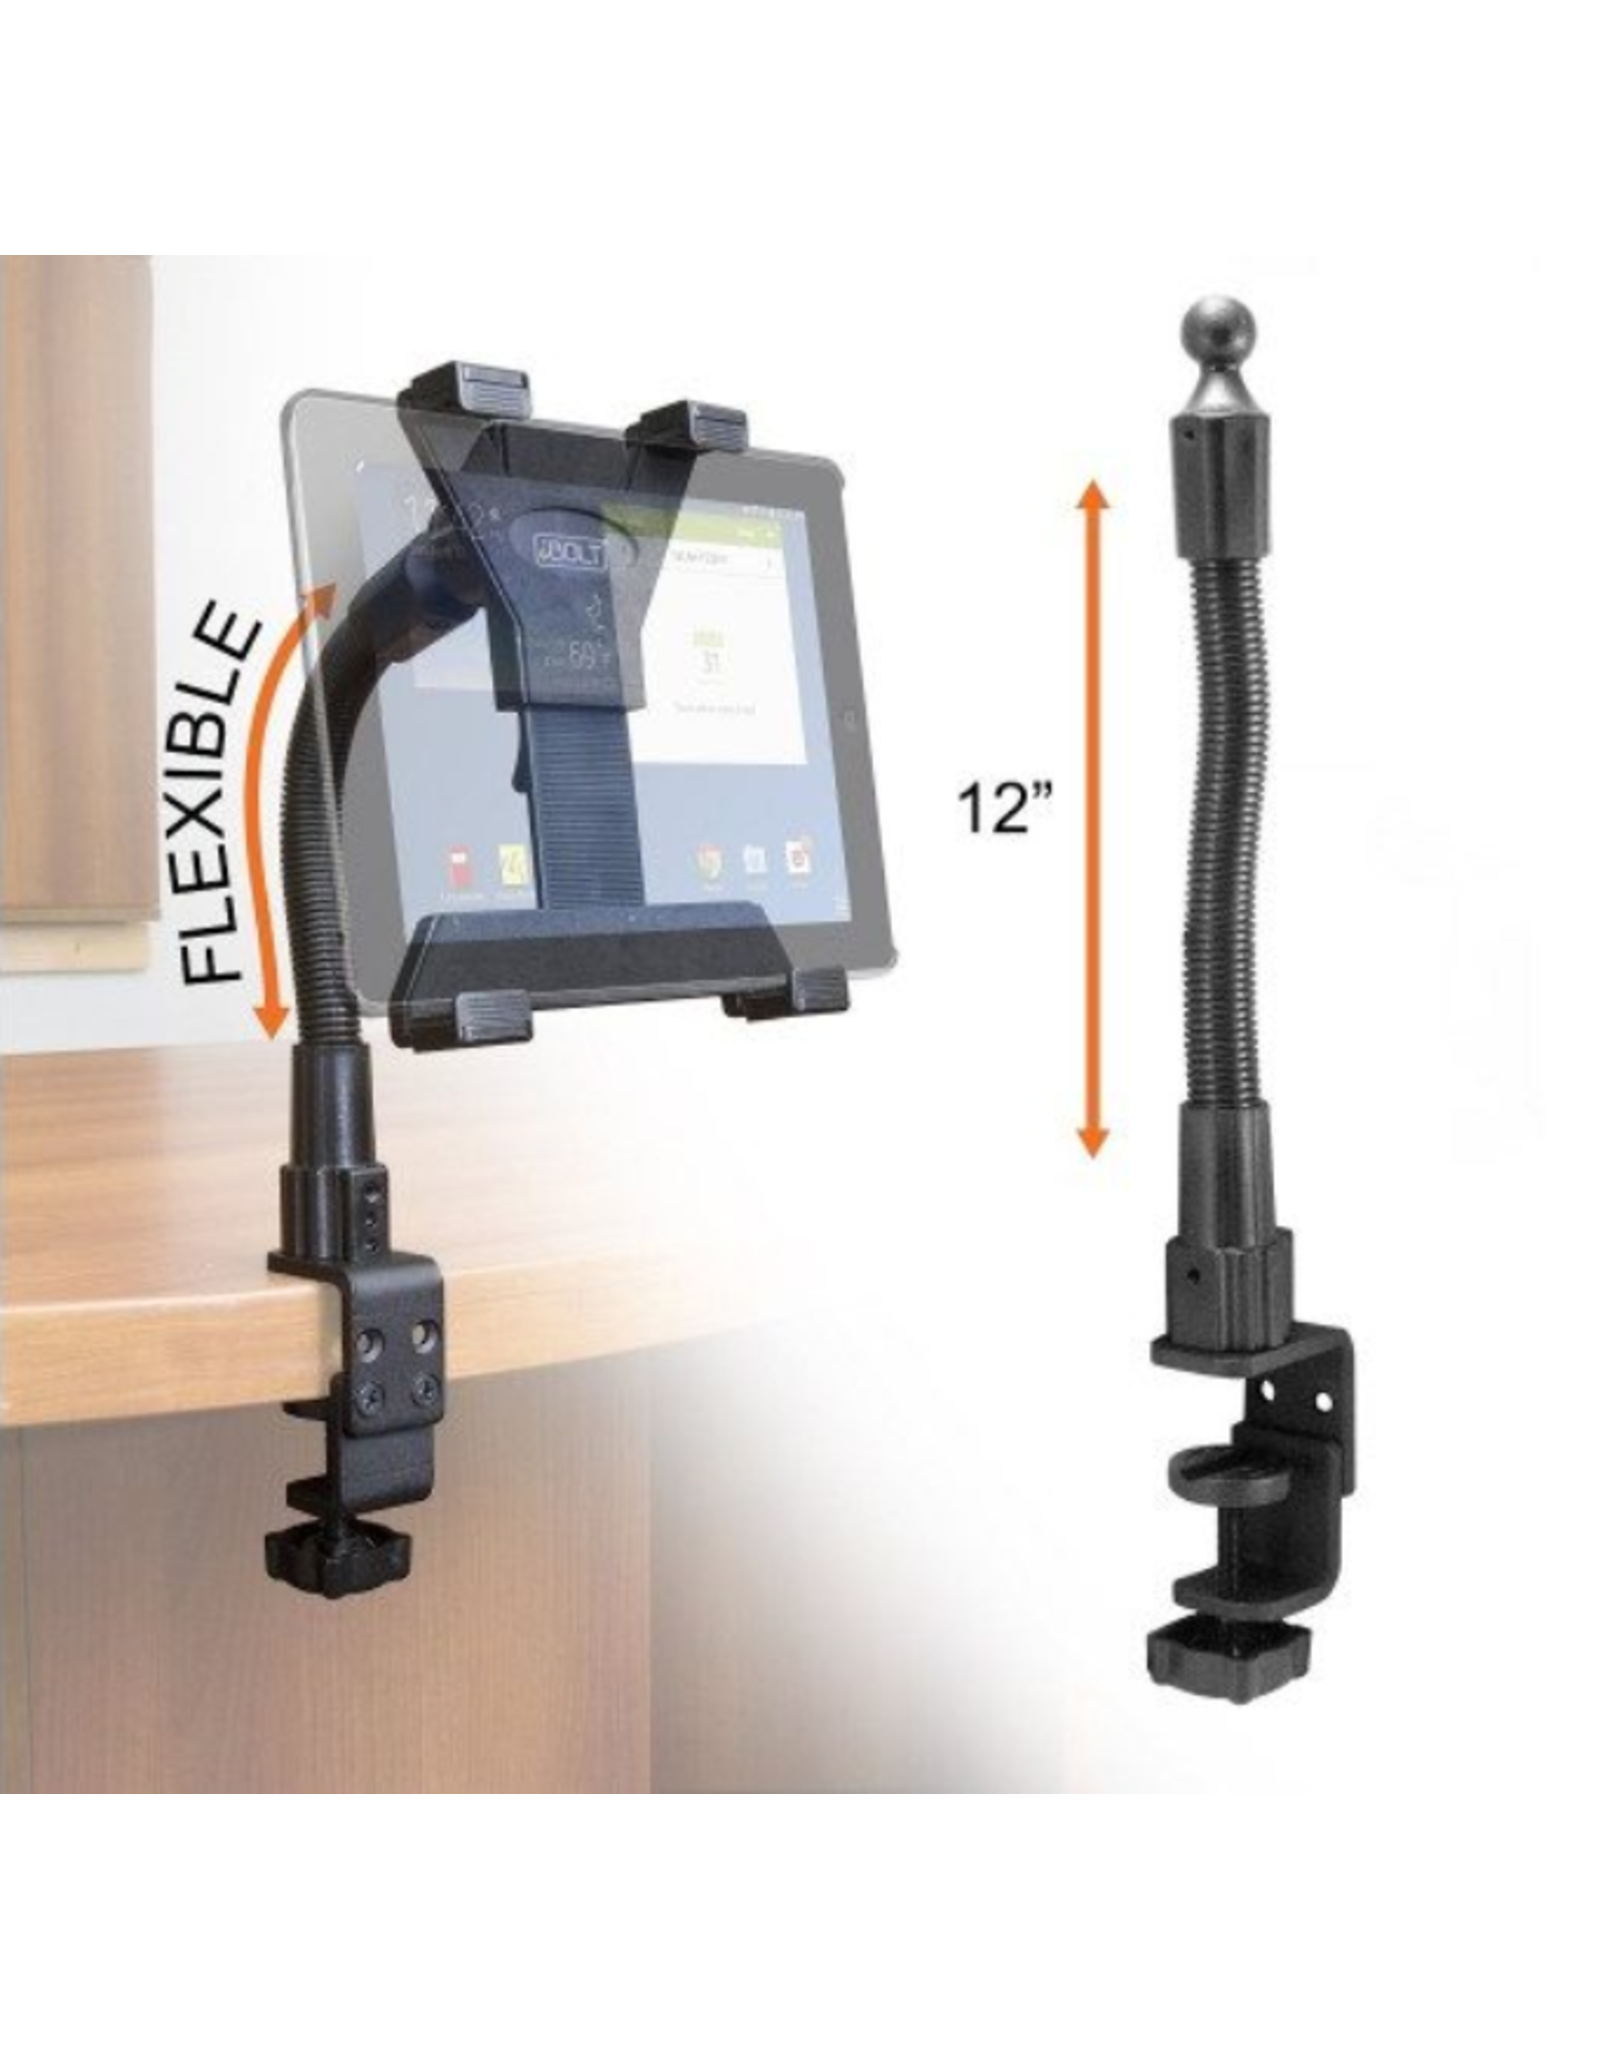 iBolt iBOLT Tablet Holder 7-10in TabDock FlexPro Clamp SKU:49835